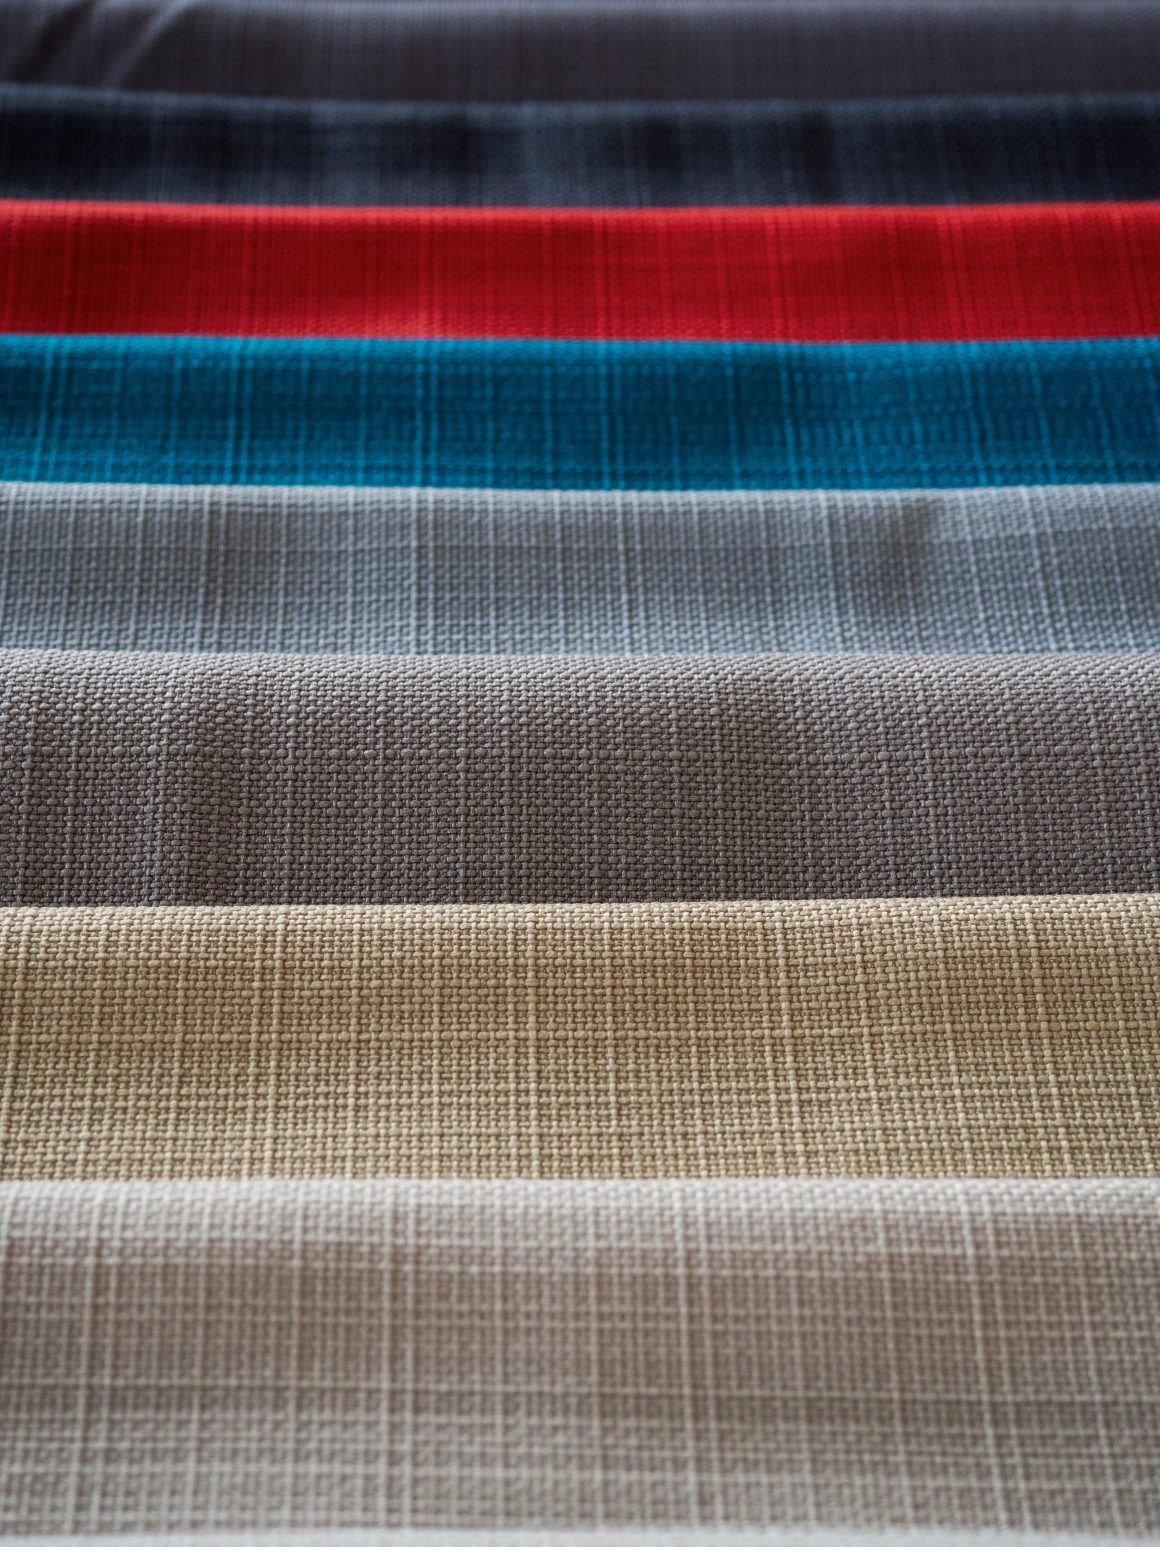 Fabric Of Pleated Pant